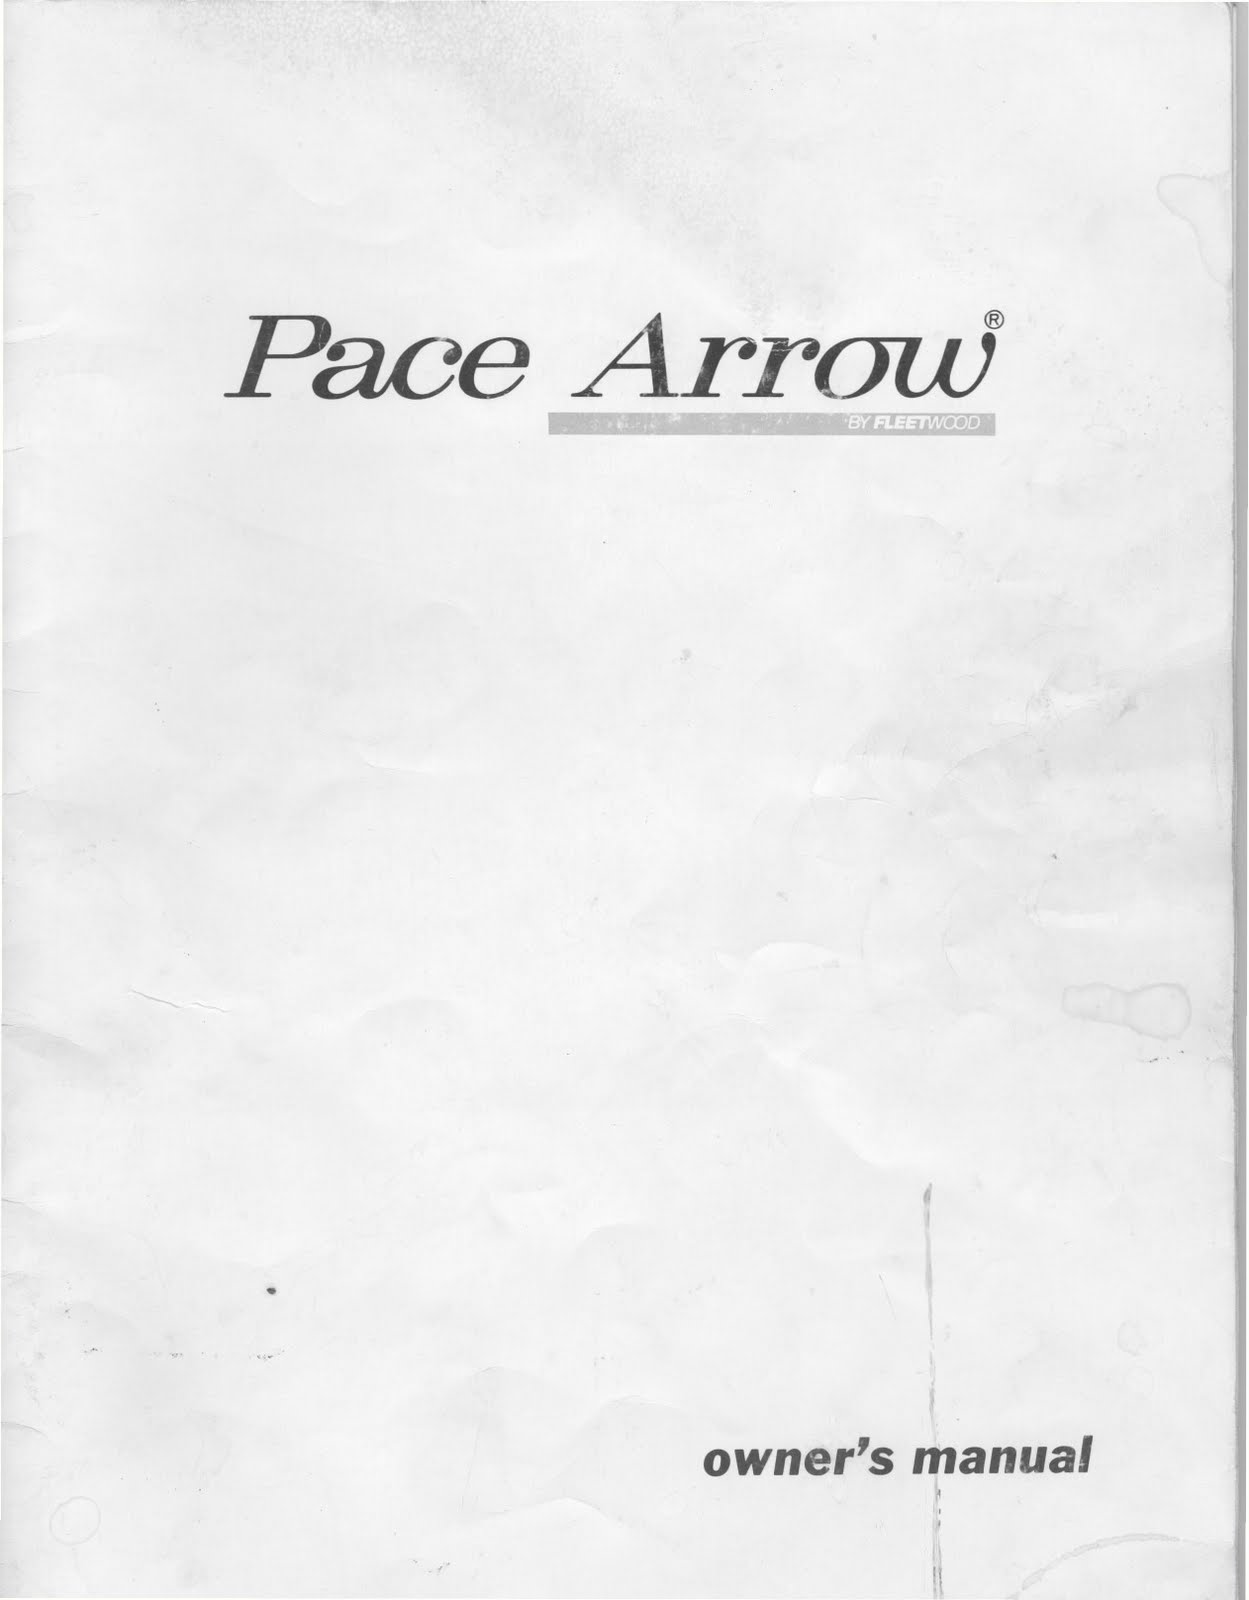 1983 Fleetwood Pace Arrow Owners Manuals Volkswagen Vanagon Repair Manual